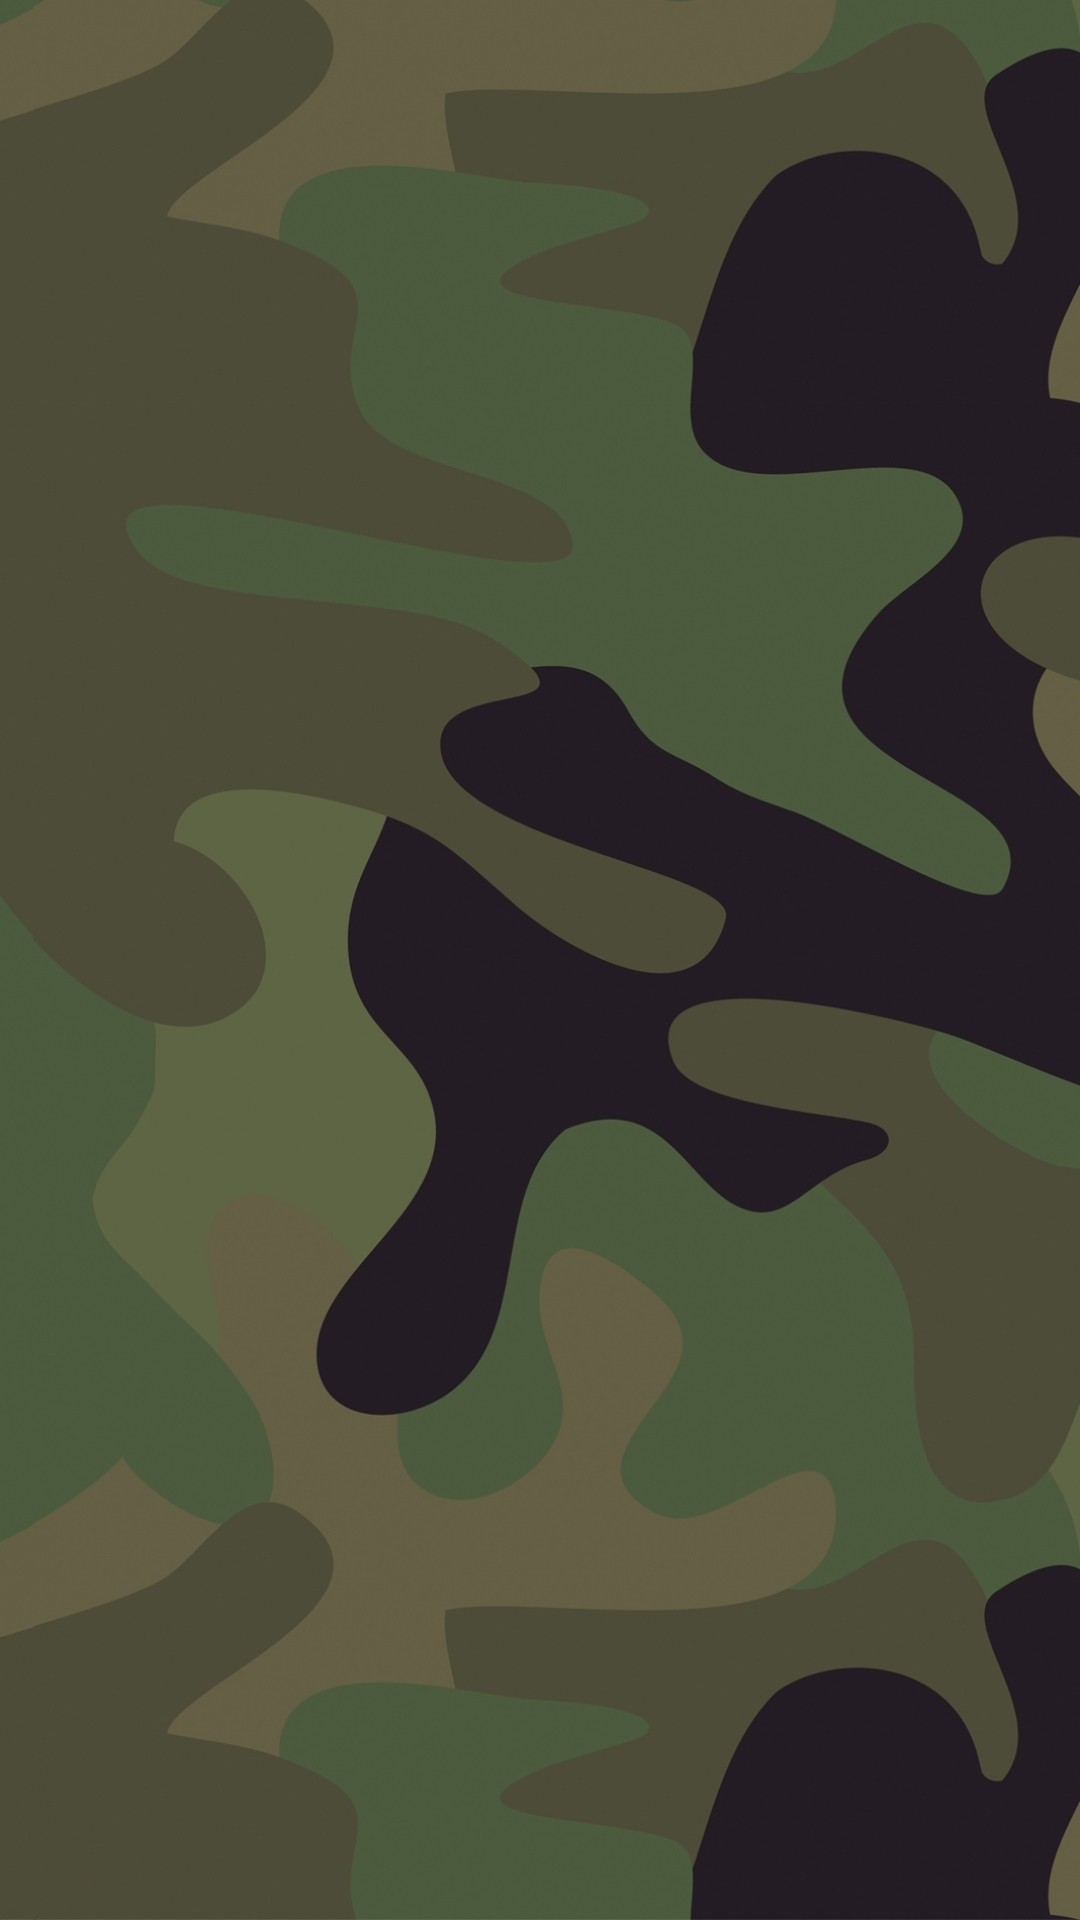 Wallpaper military, spots, texture, background